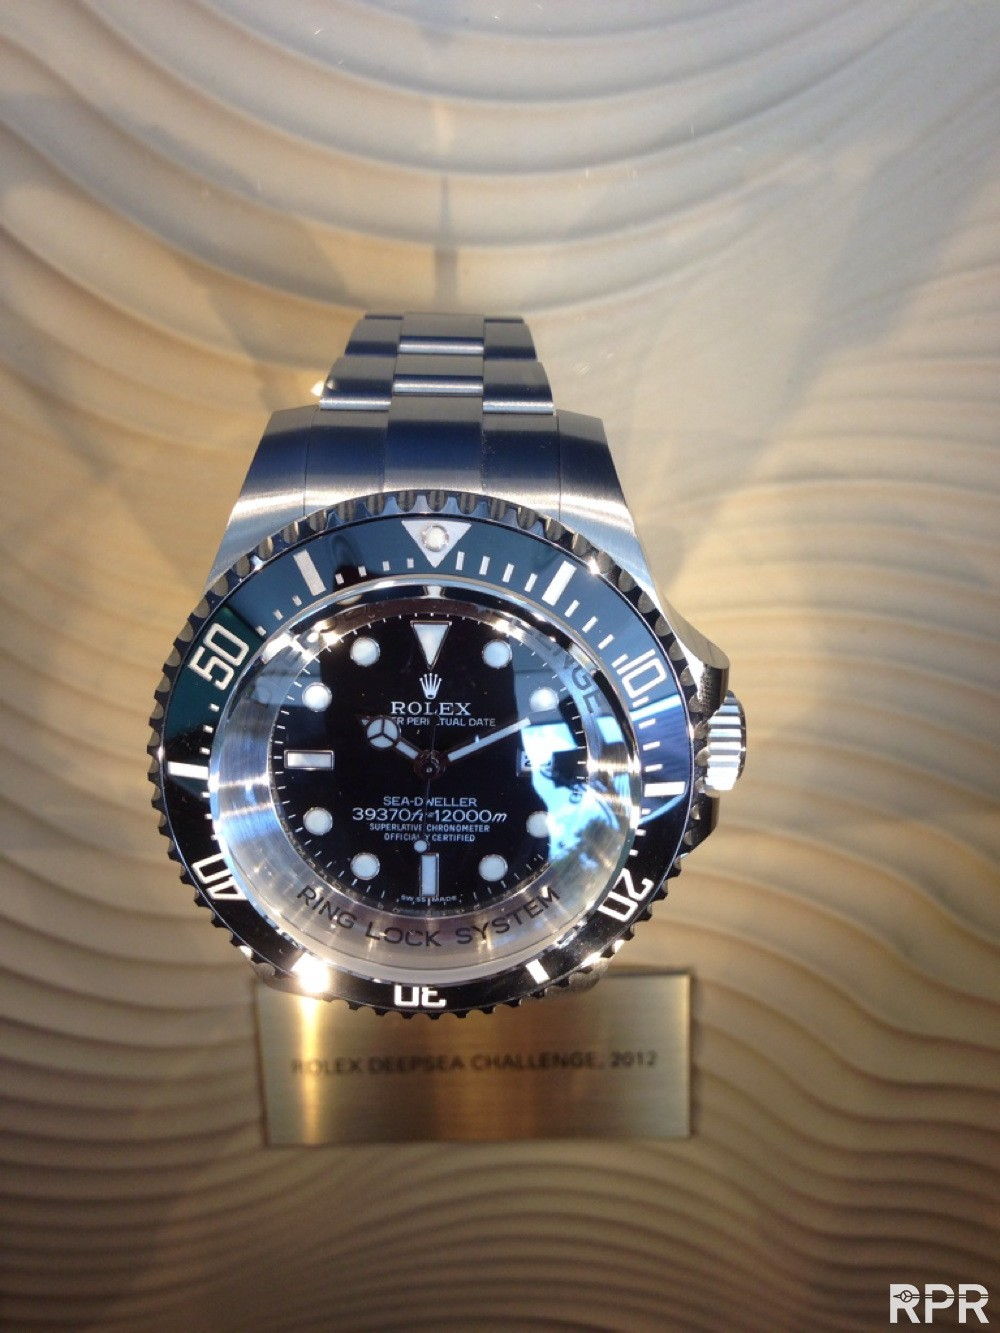 The New 51 Mm Rolex Deepsea Challenge Super Submariner Of James